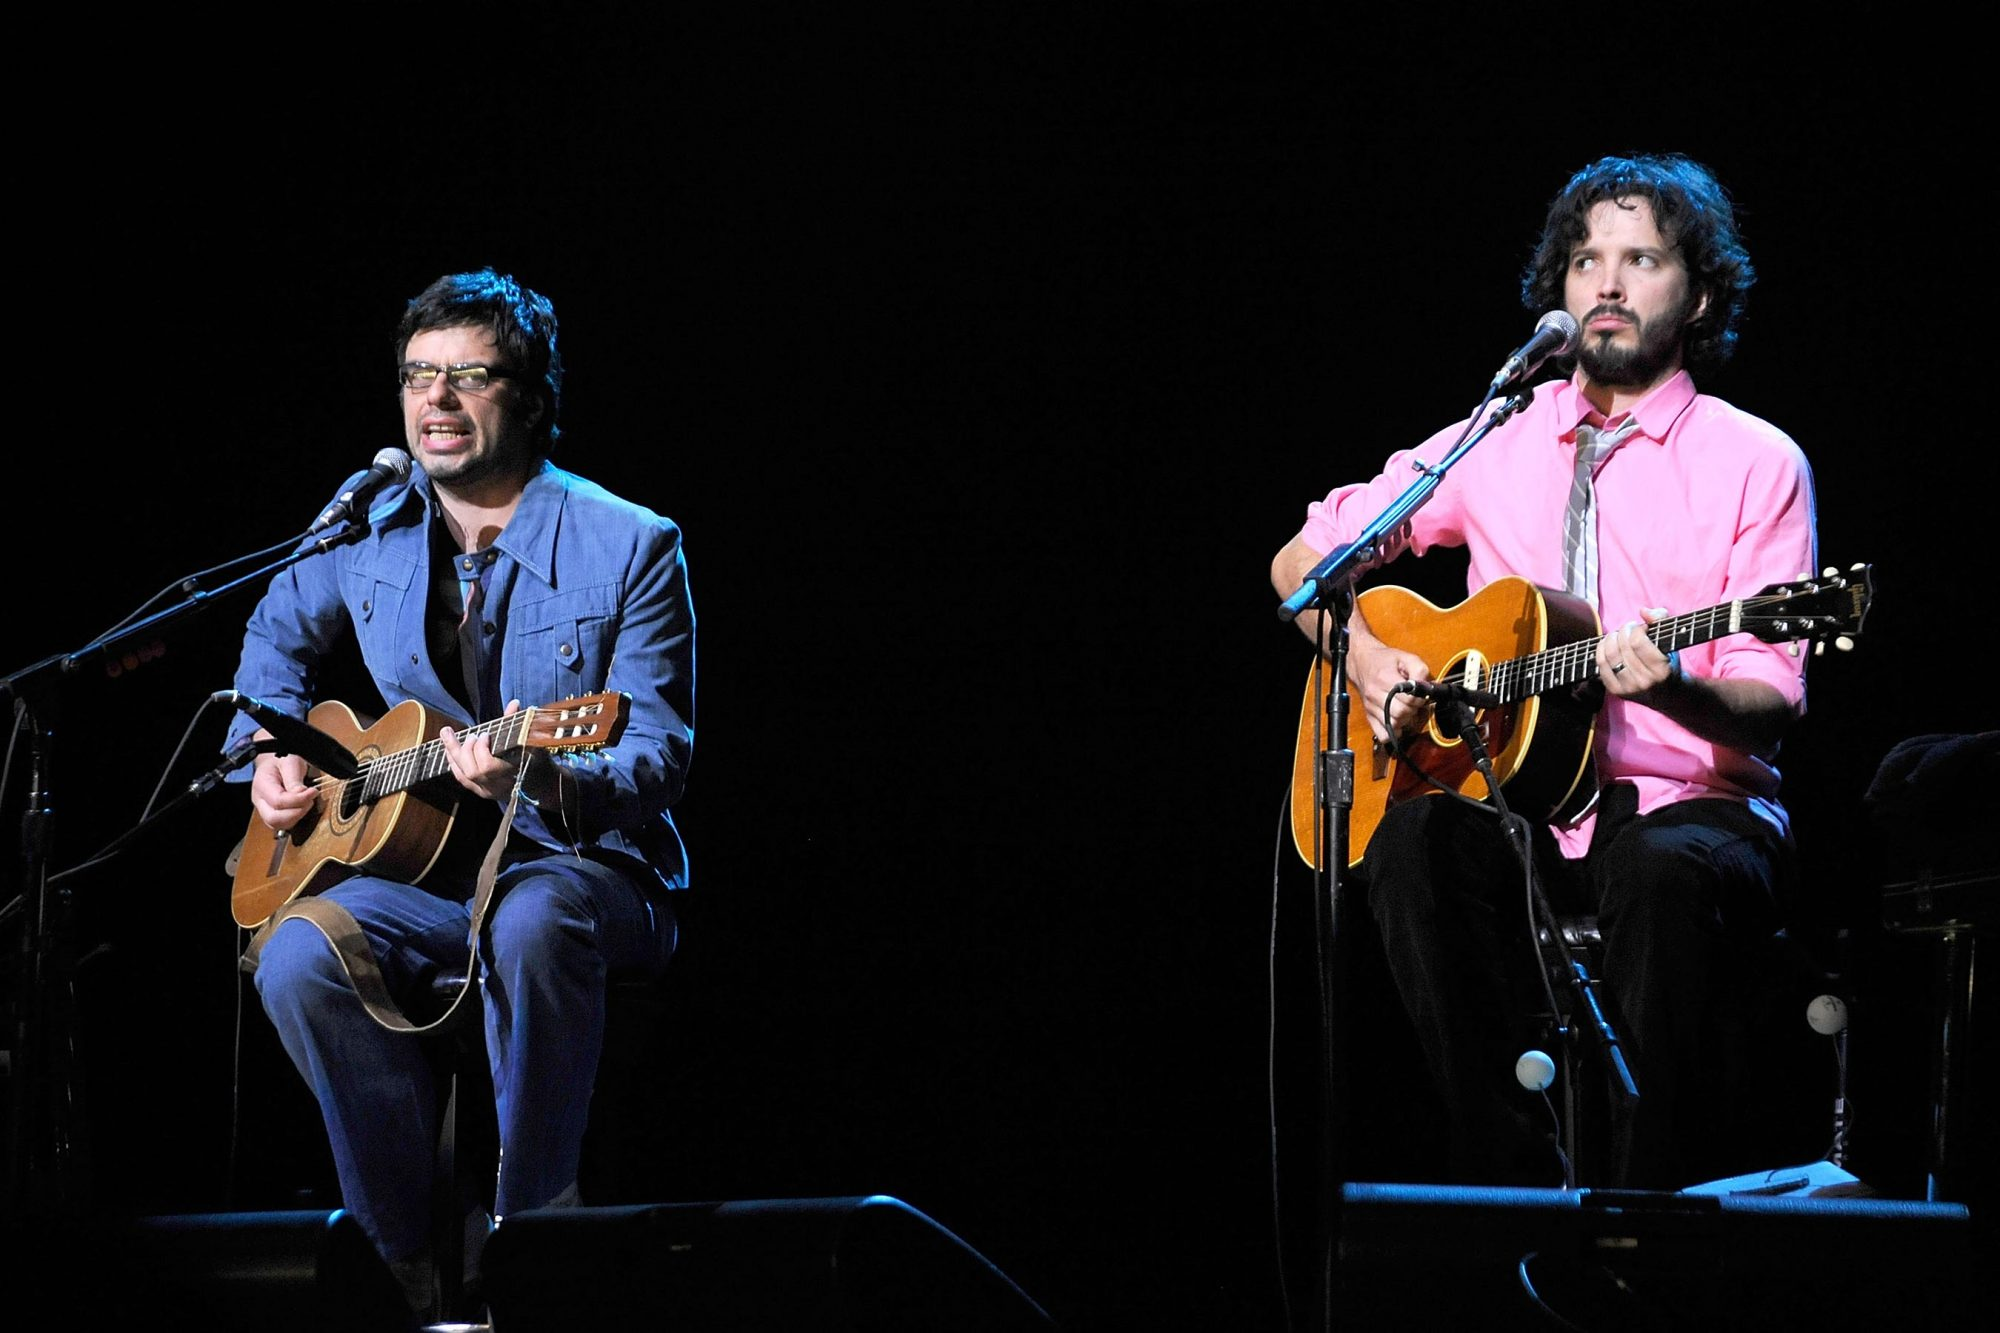 Flight Of The Conchords In Concert At Radio City Music Hall - April 14,